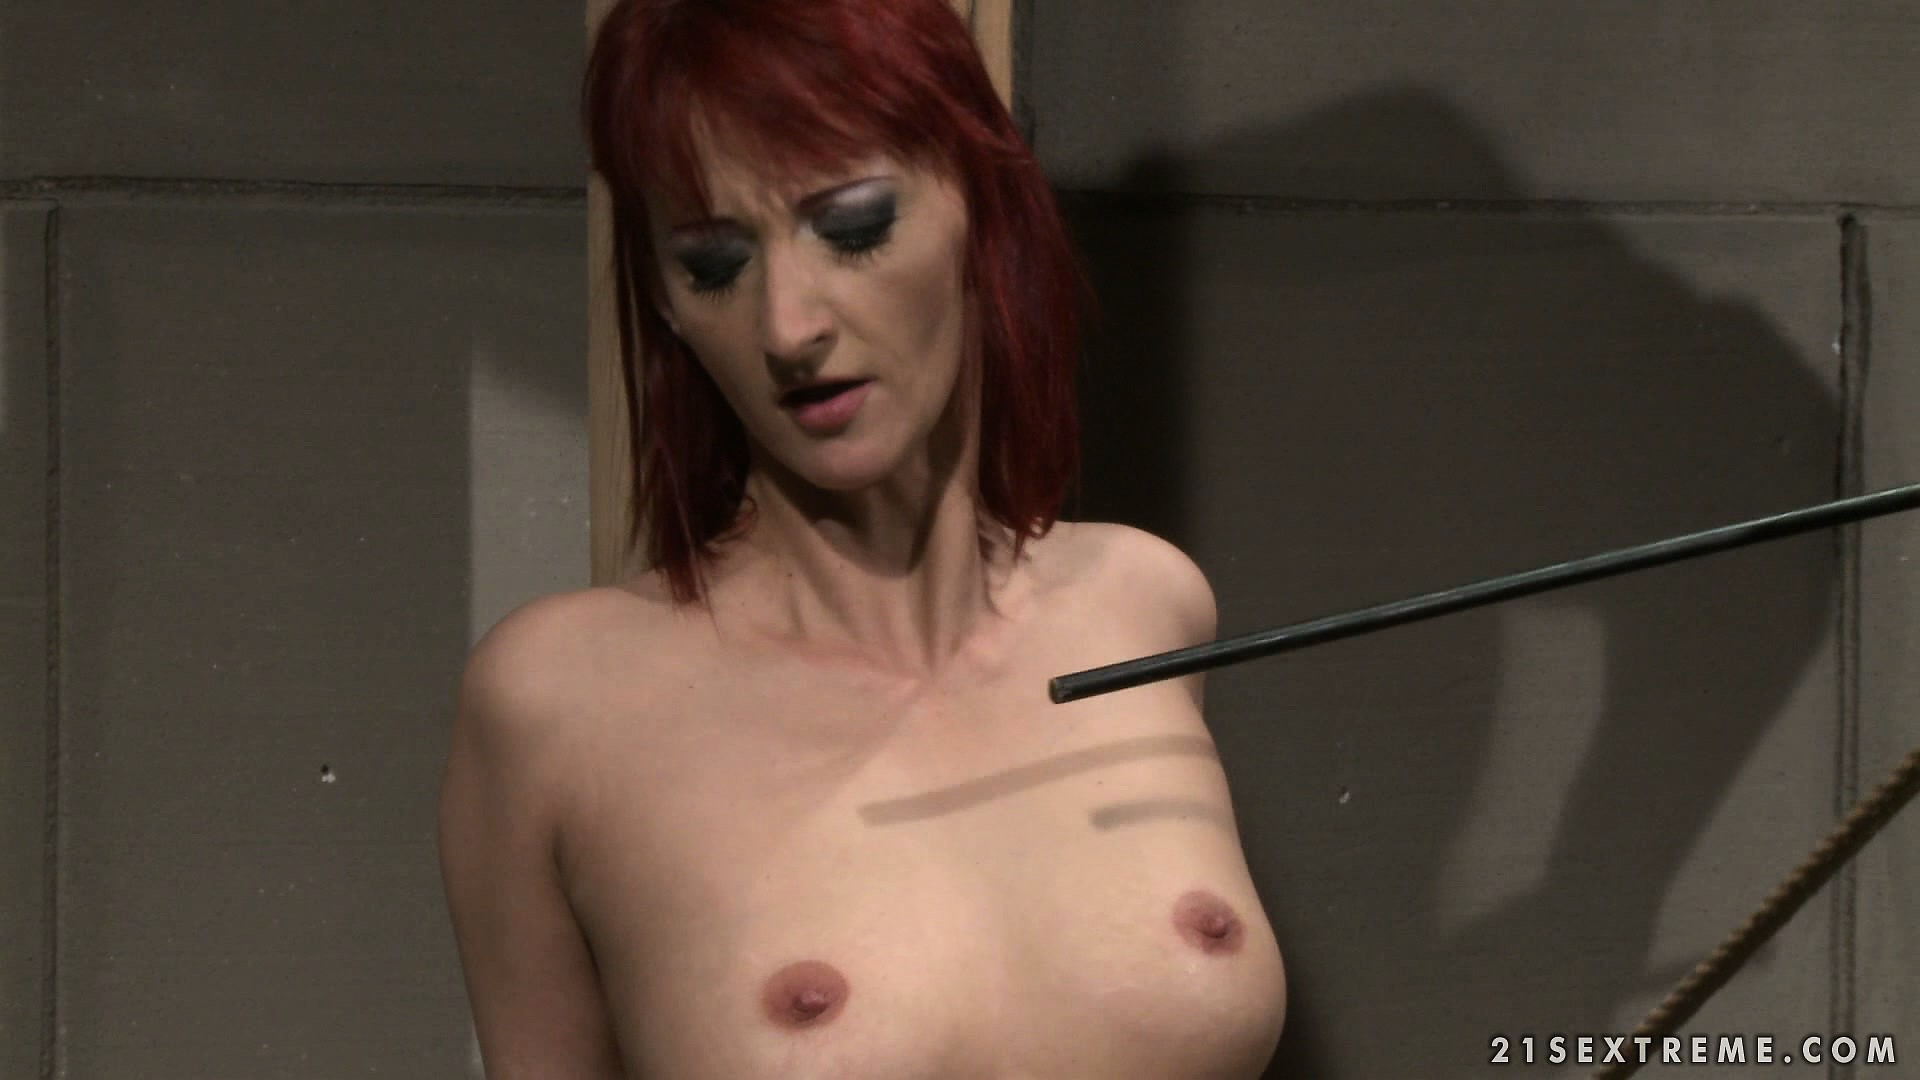 Porn Tube of Personal Redhead Slave Gets Tied Up And Tortured, Then Sucks His Cock